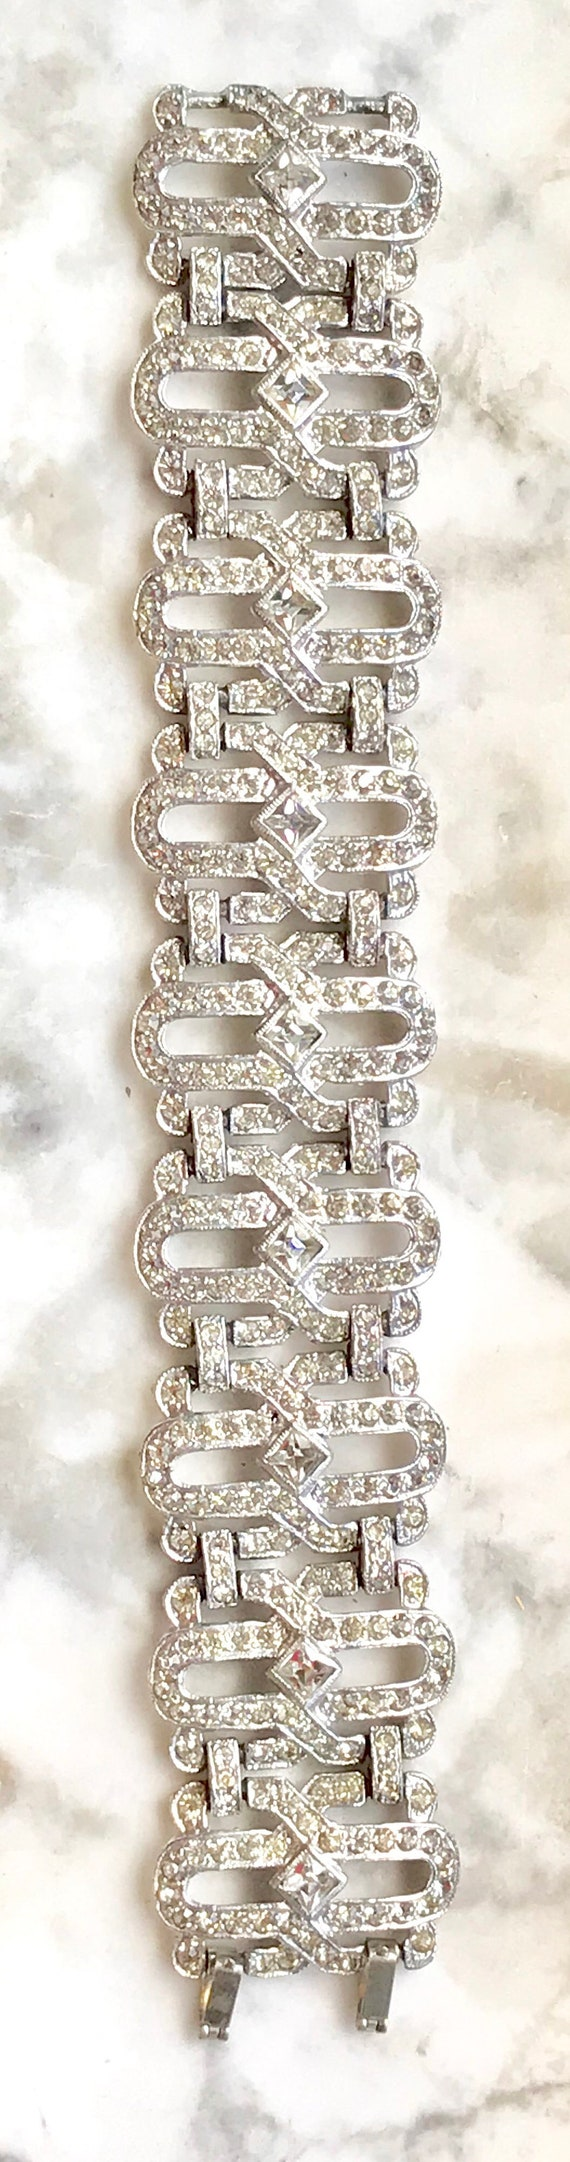 Gorgeous  Geometric Deco Unsigned Clear Sparkling 1920's Rhinestone Bracelet